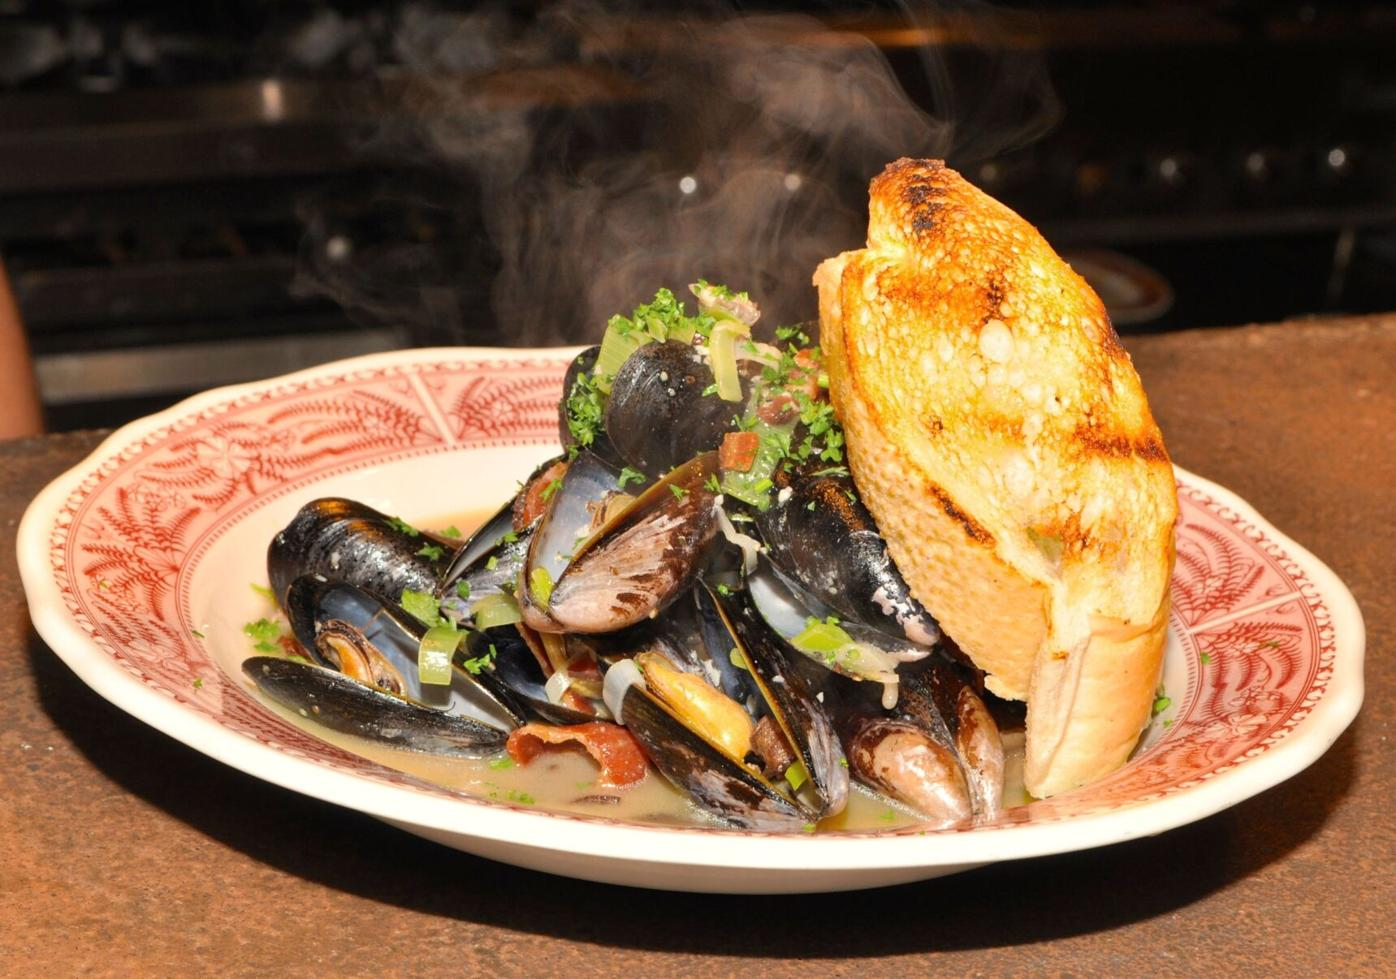 041421_MNS_Dining_Out_001 Southern Bistro mussels